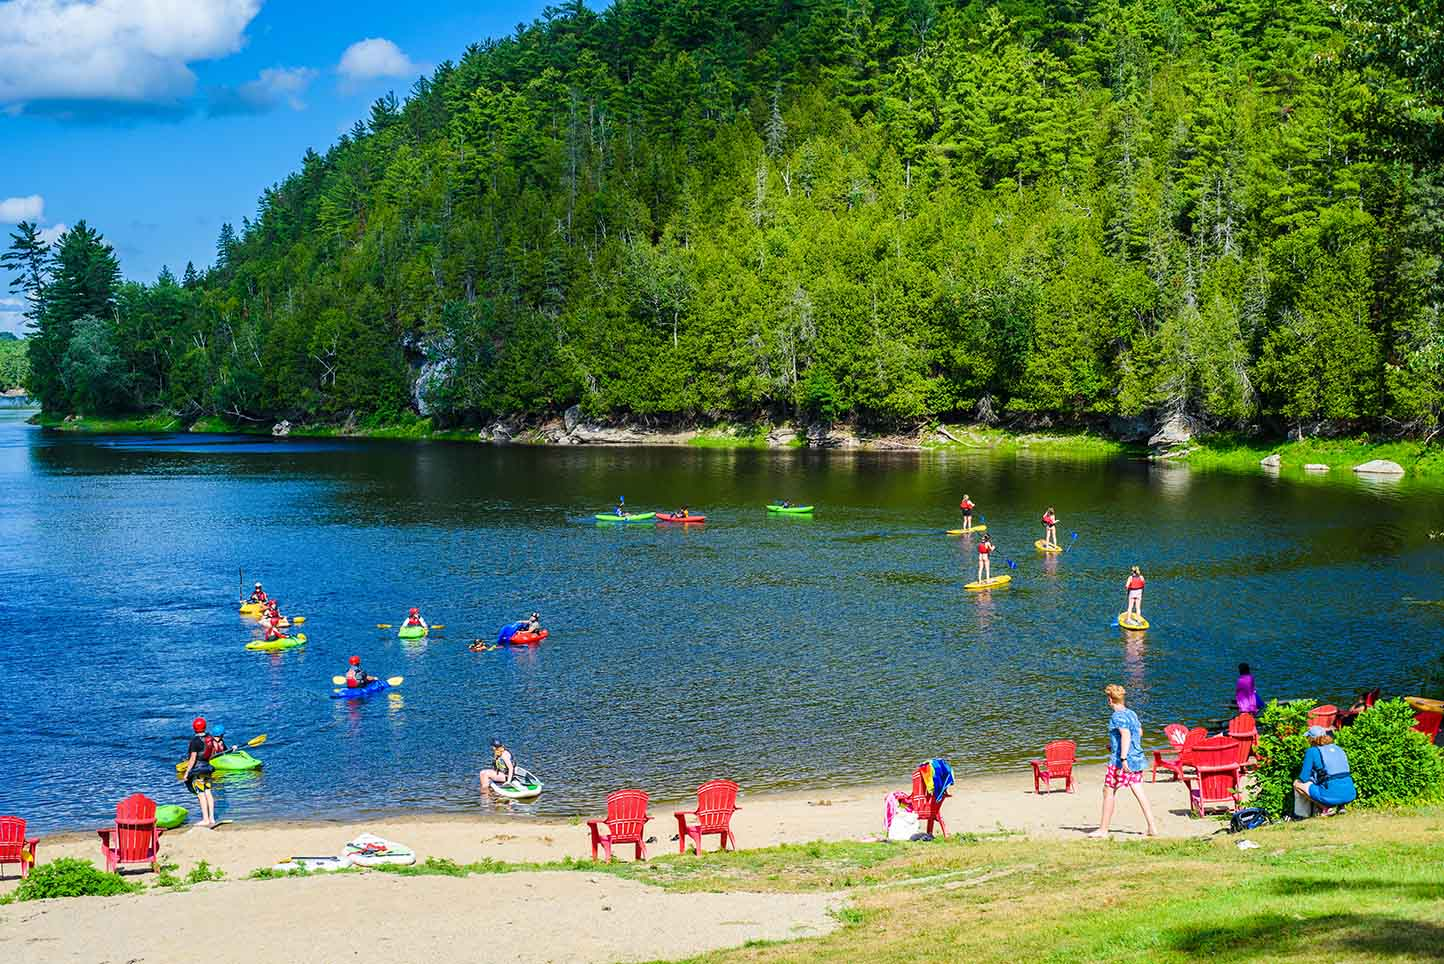 Beach Resort Activities National Whitewater Park Wilderness Tours SUP Kayaks Lounge Relax Ottawa River Ontario Canada Best Summer Vacation